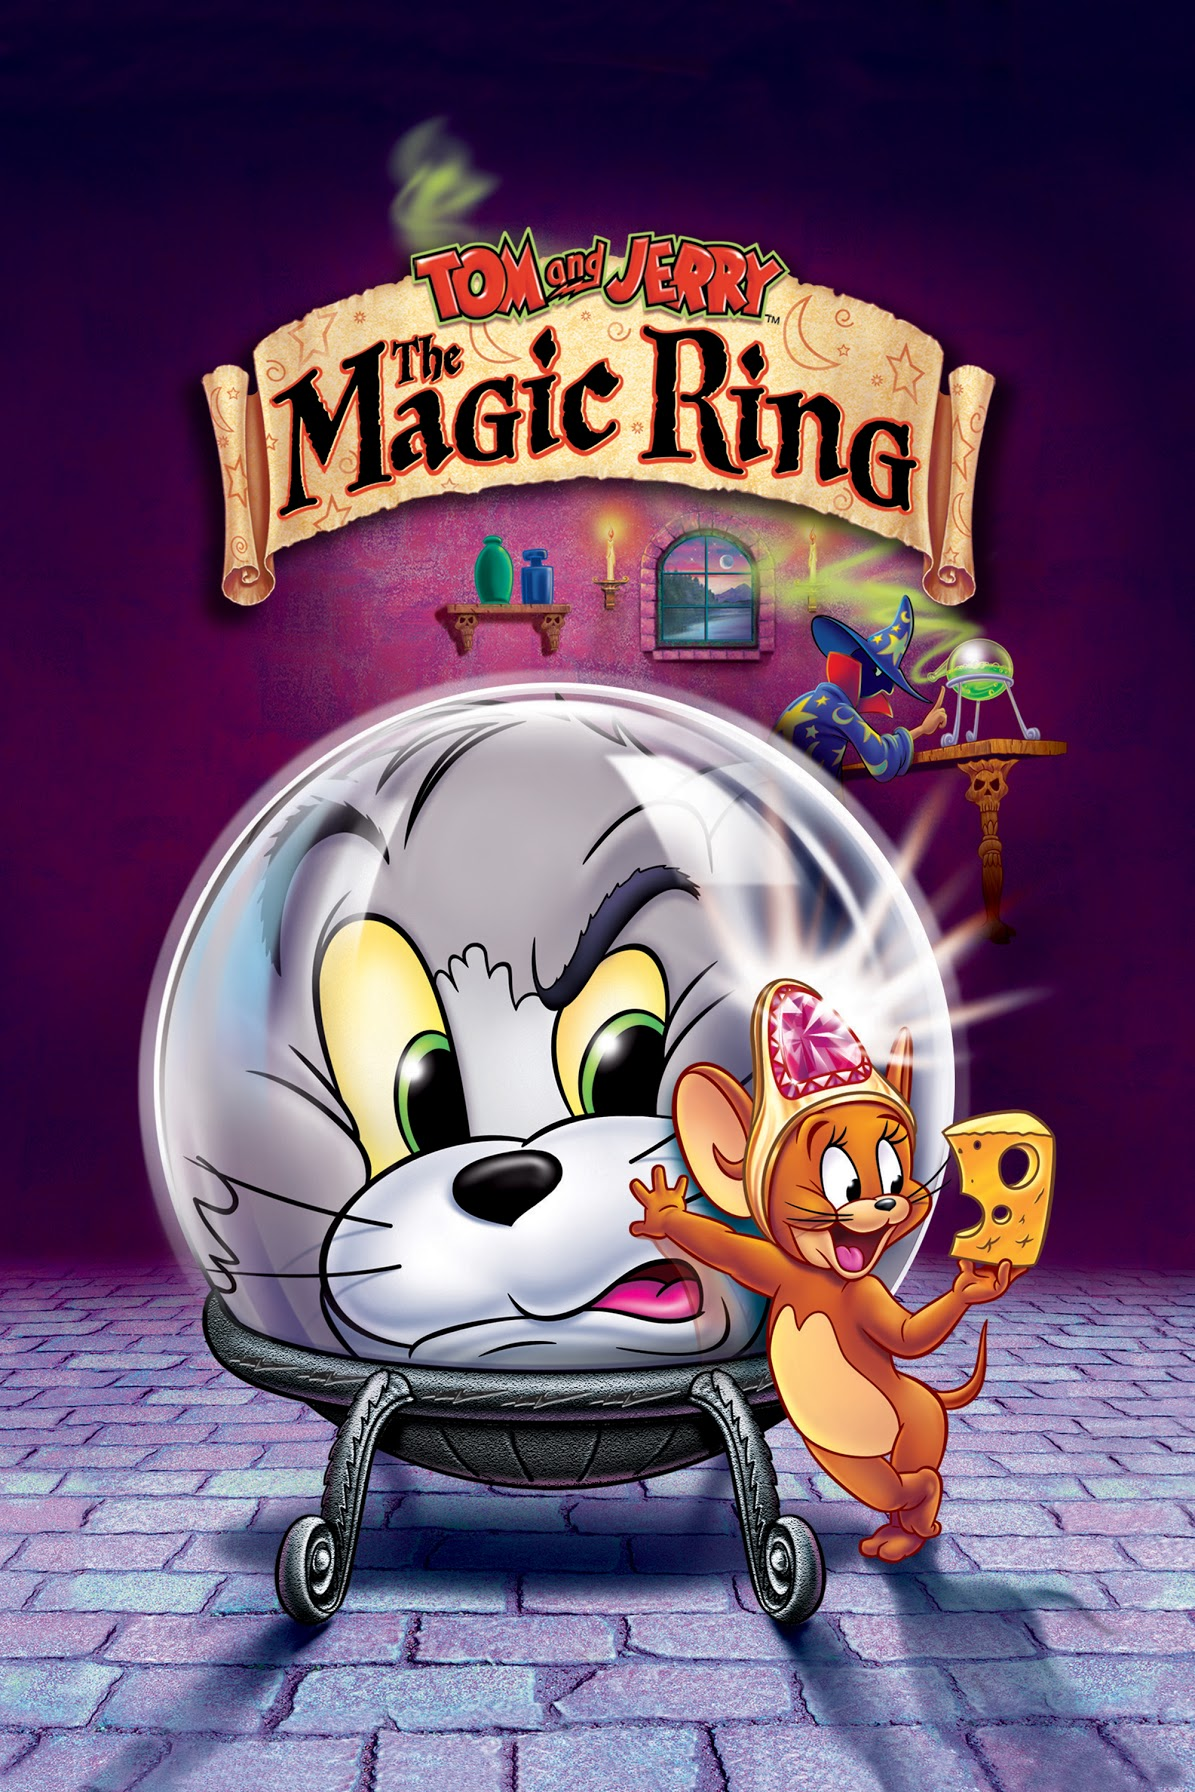 Tom And Jerry : The Magic Ring 2001 Hindi Movie Download